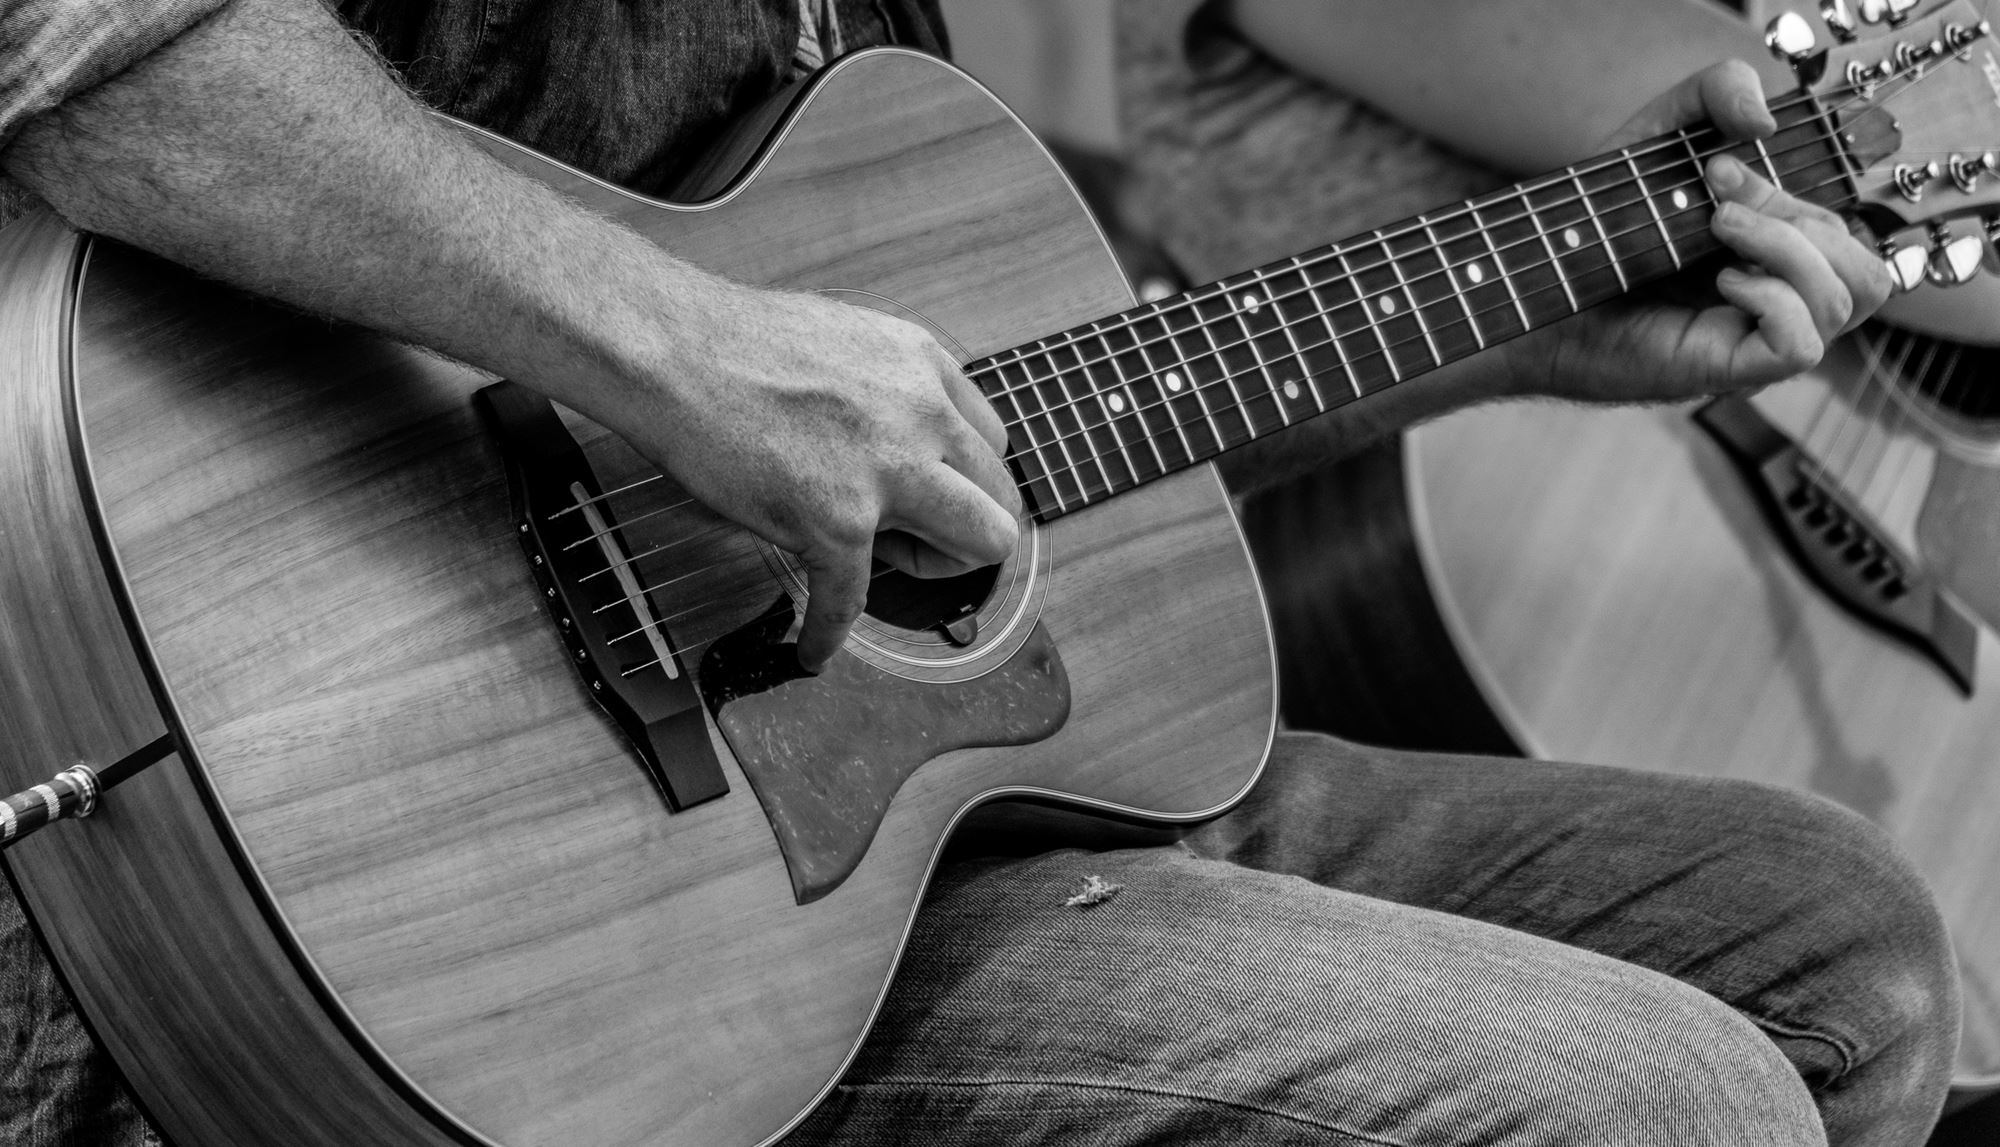 A black and white image of a hand strumming a guitar.